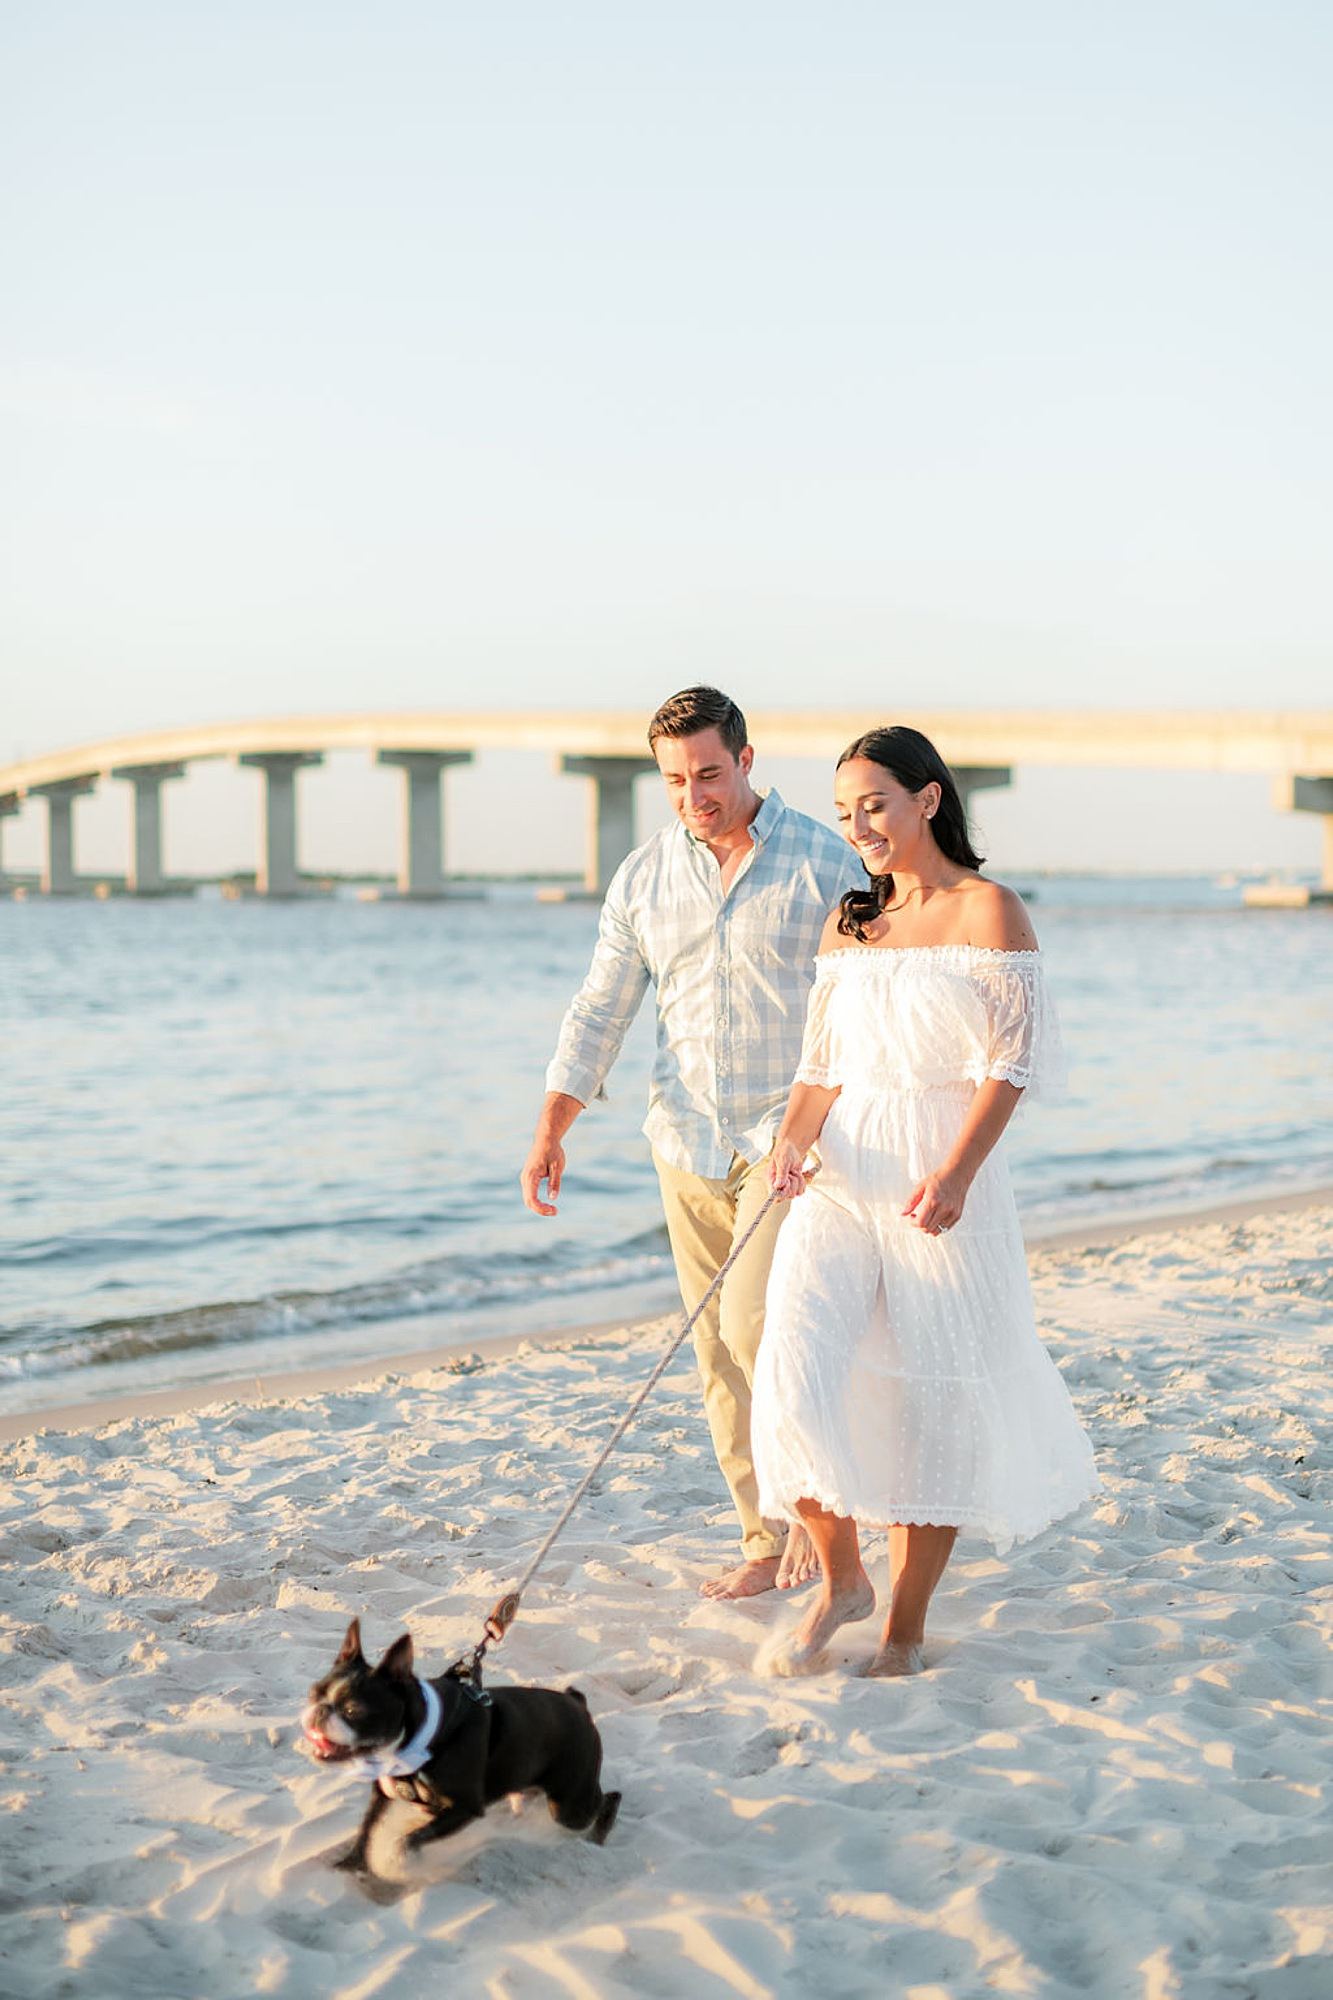 Airy and Bright Engagement Photography in Ocean City NJ by Magdalena Studios 0026